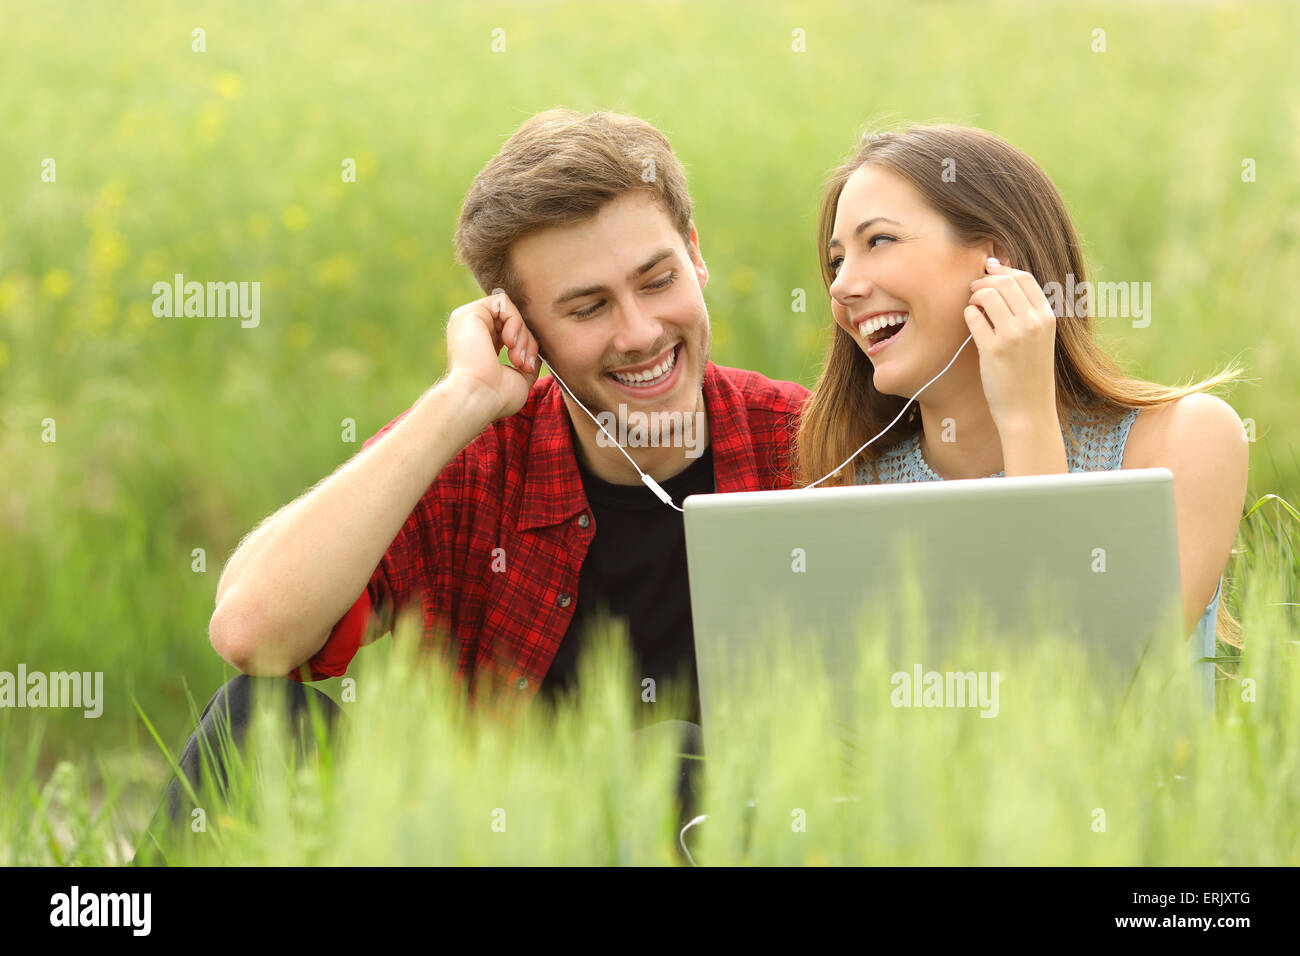 Happy couple or friends sharing music from a laptop sitting in a green field and looking each other - Stock Image